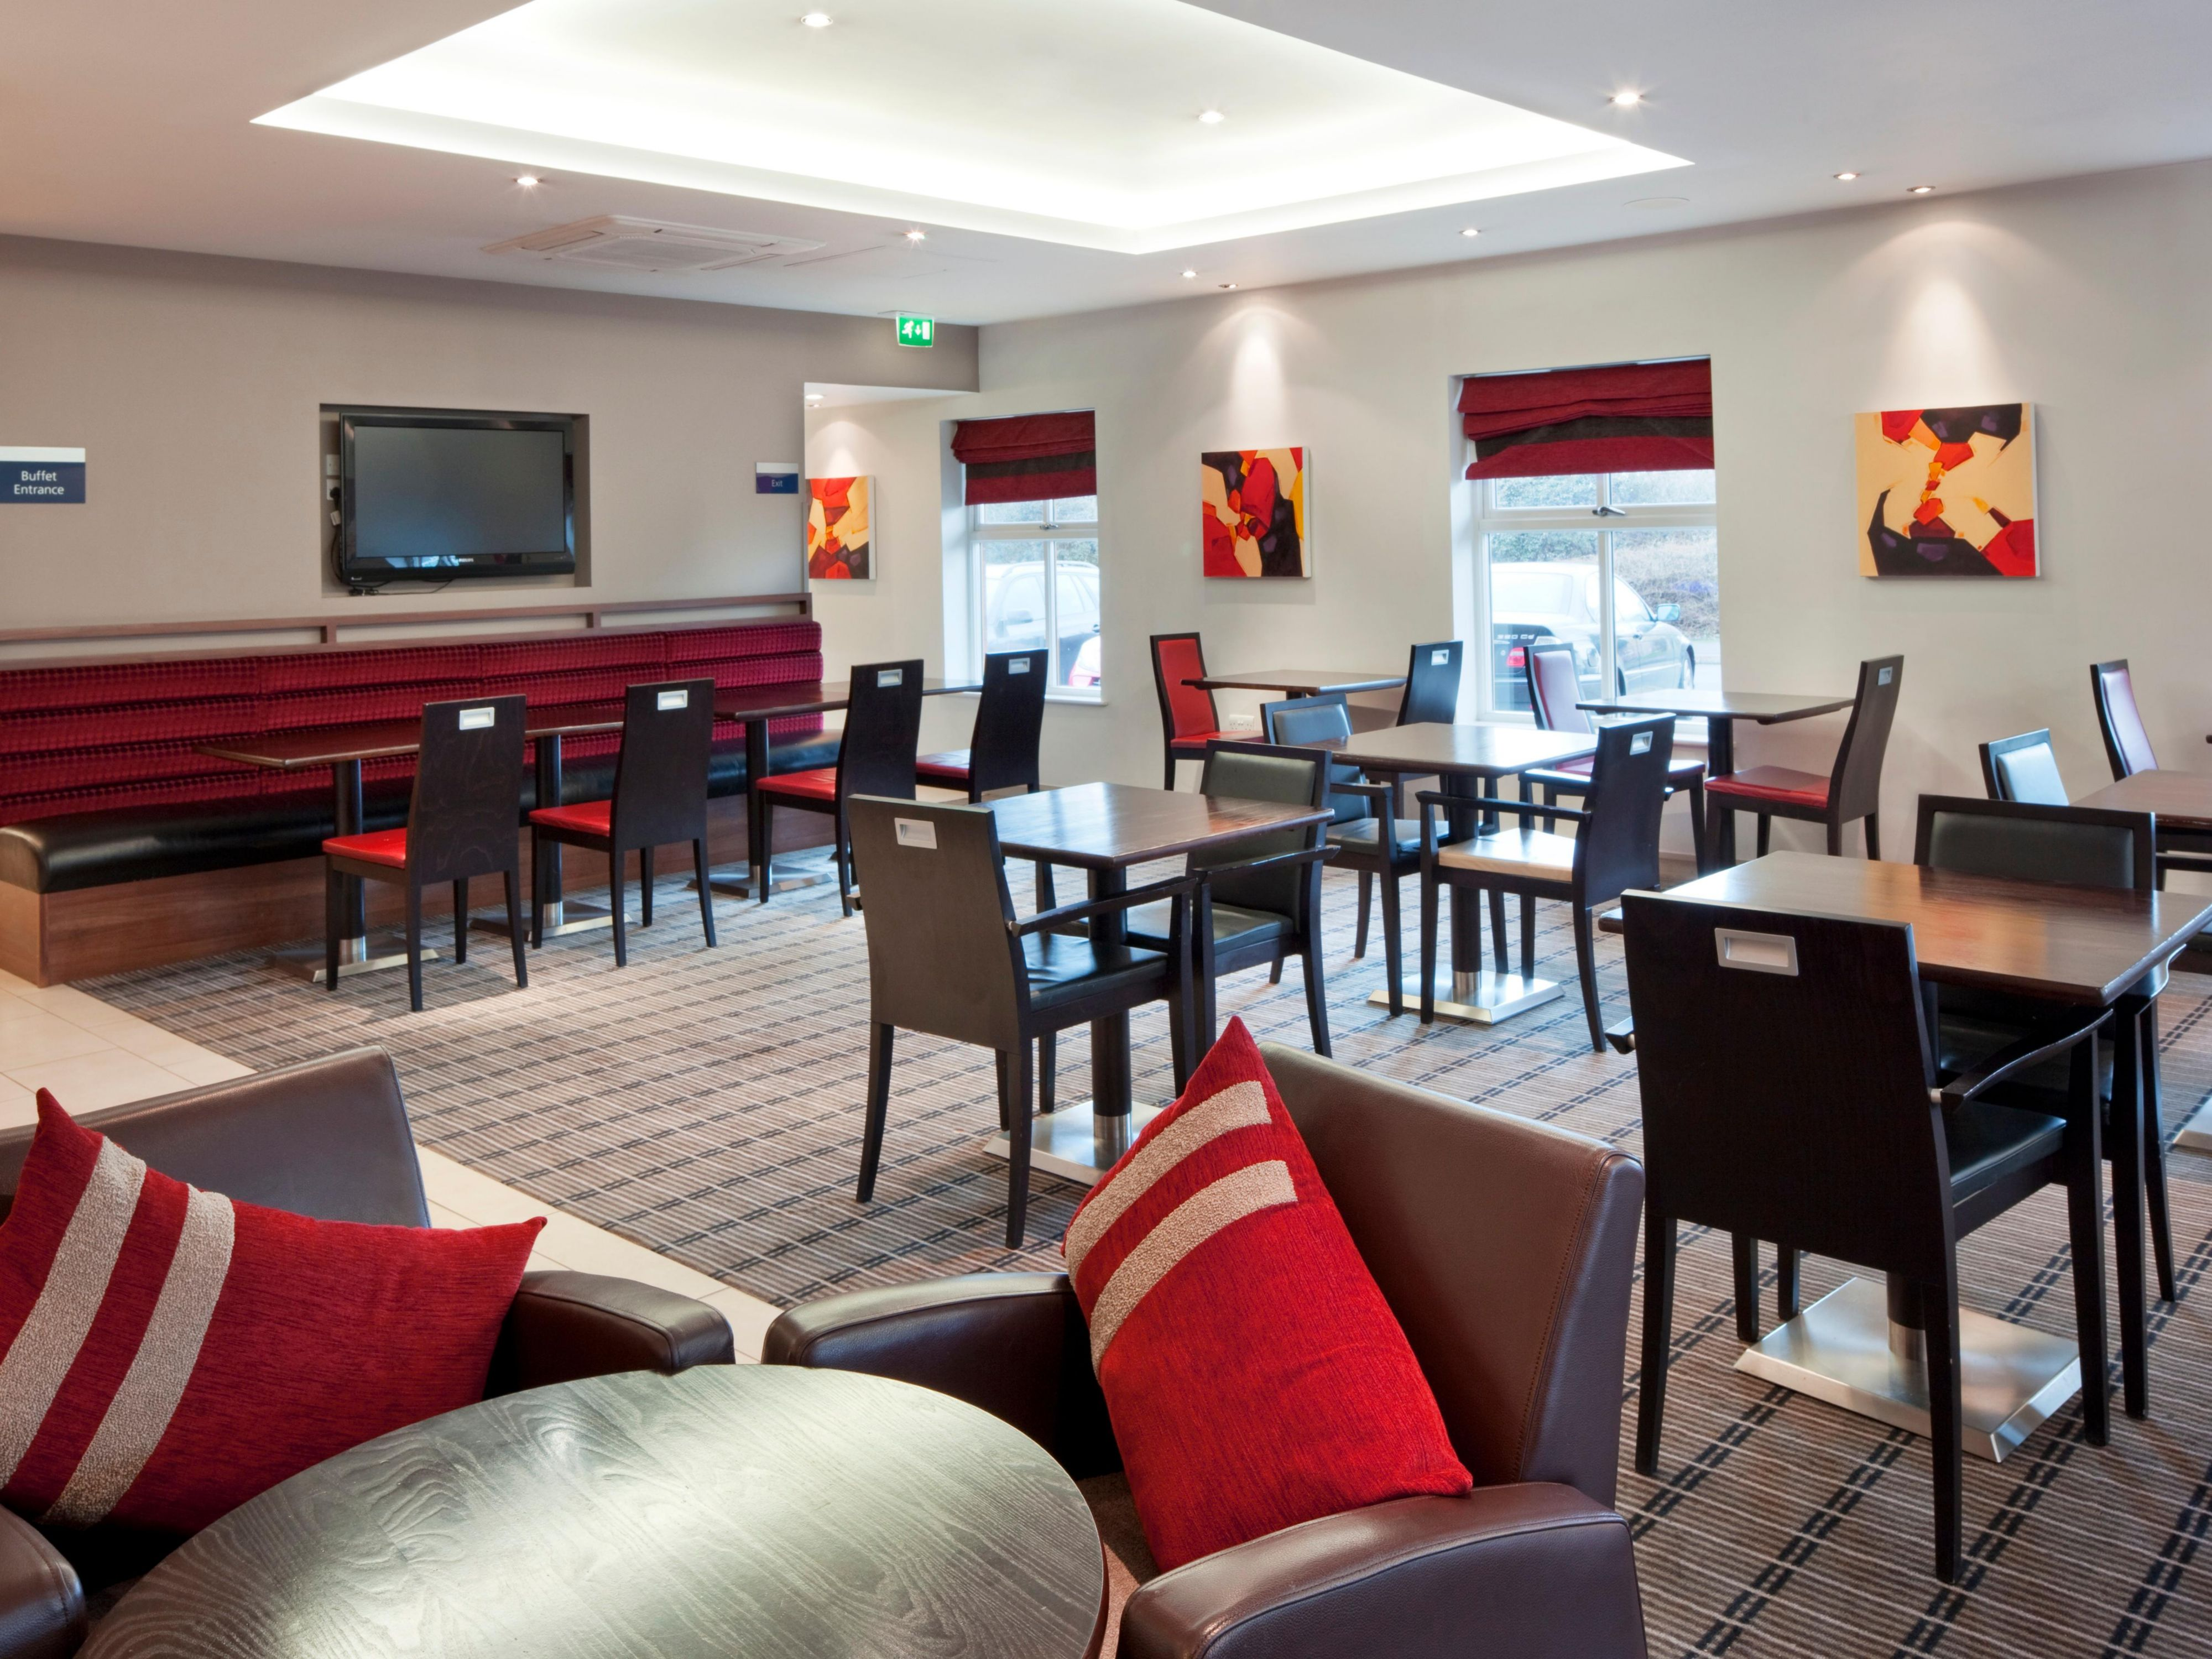 The lounge at the Holiday Inn Express hotel in Oldbury